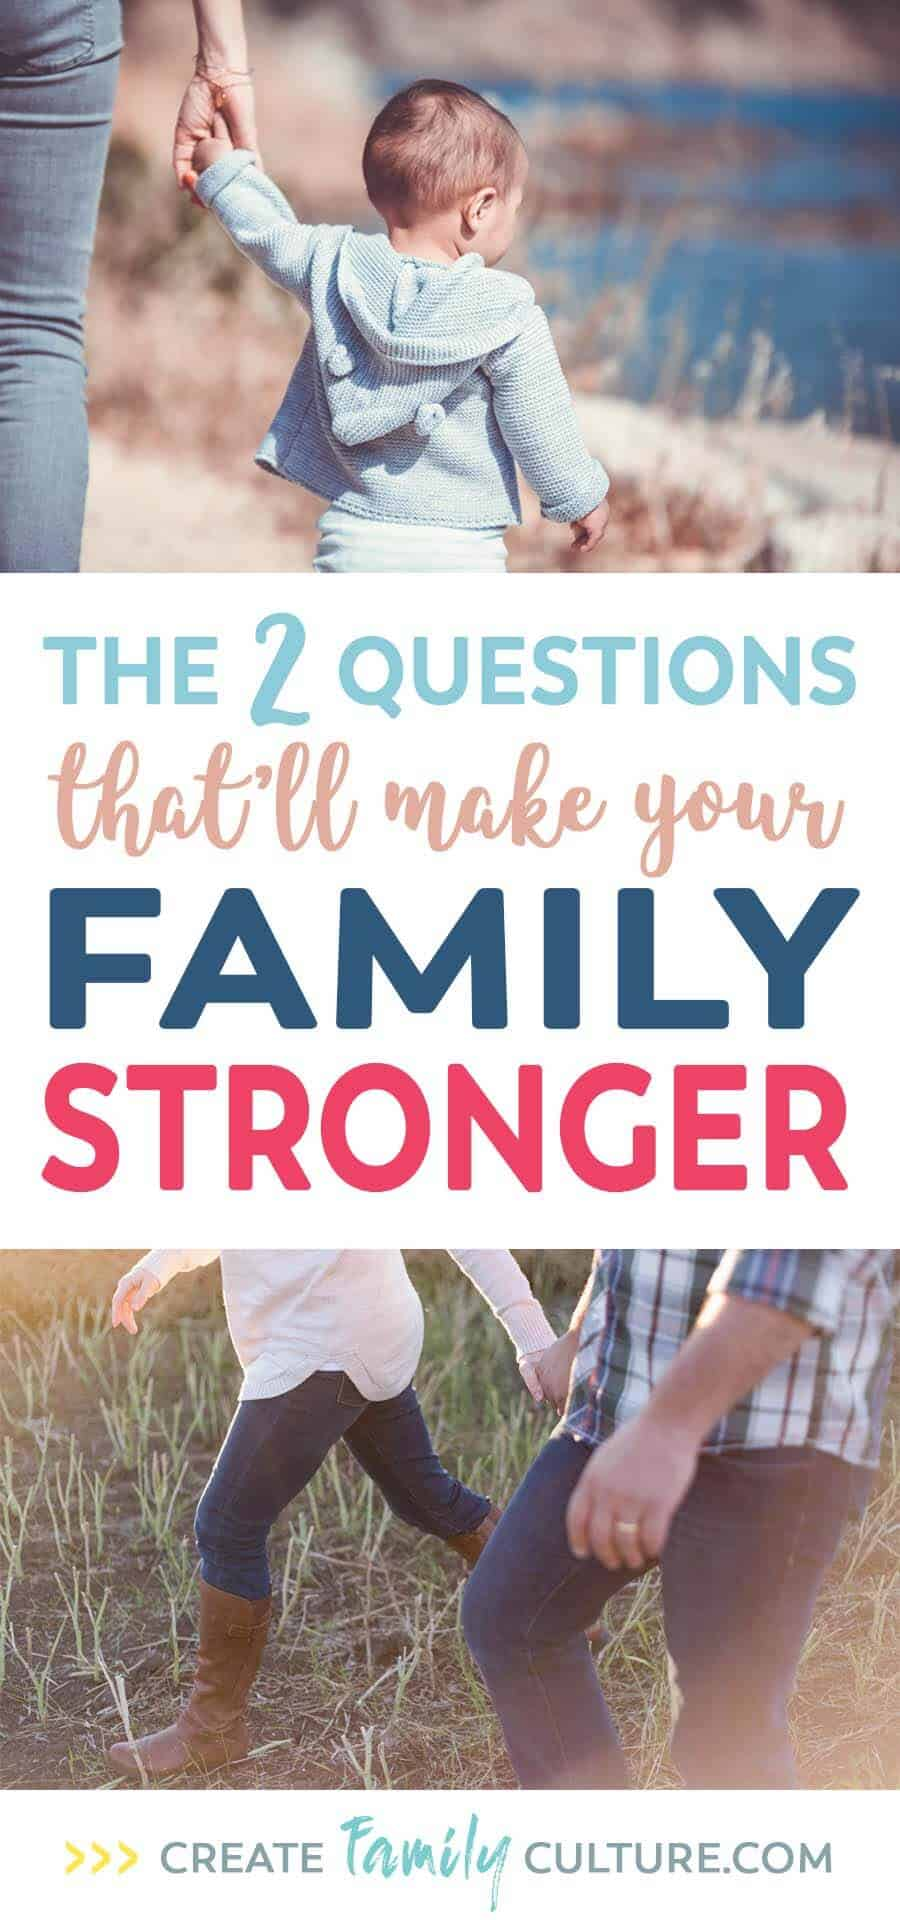 Intentional Parenting | Creating Your Own Family Culture | Parenting Tips and Tricks | Christian Parenting #parentingresources #intentionalparenting